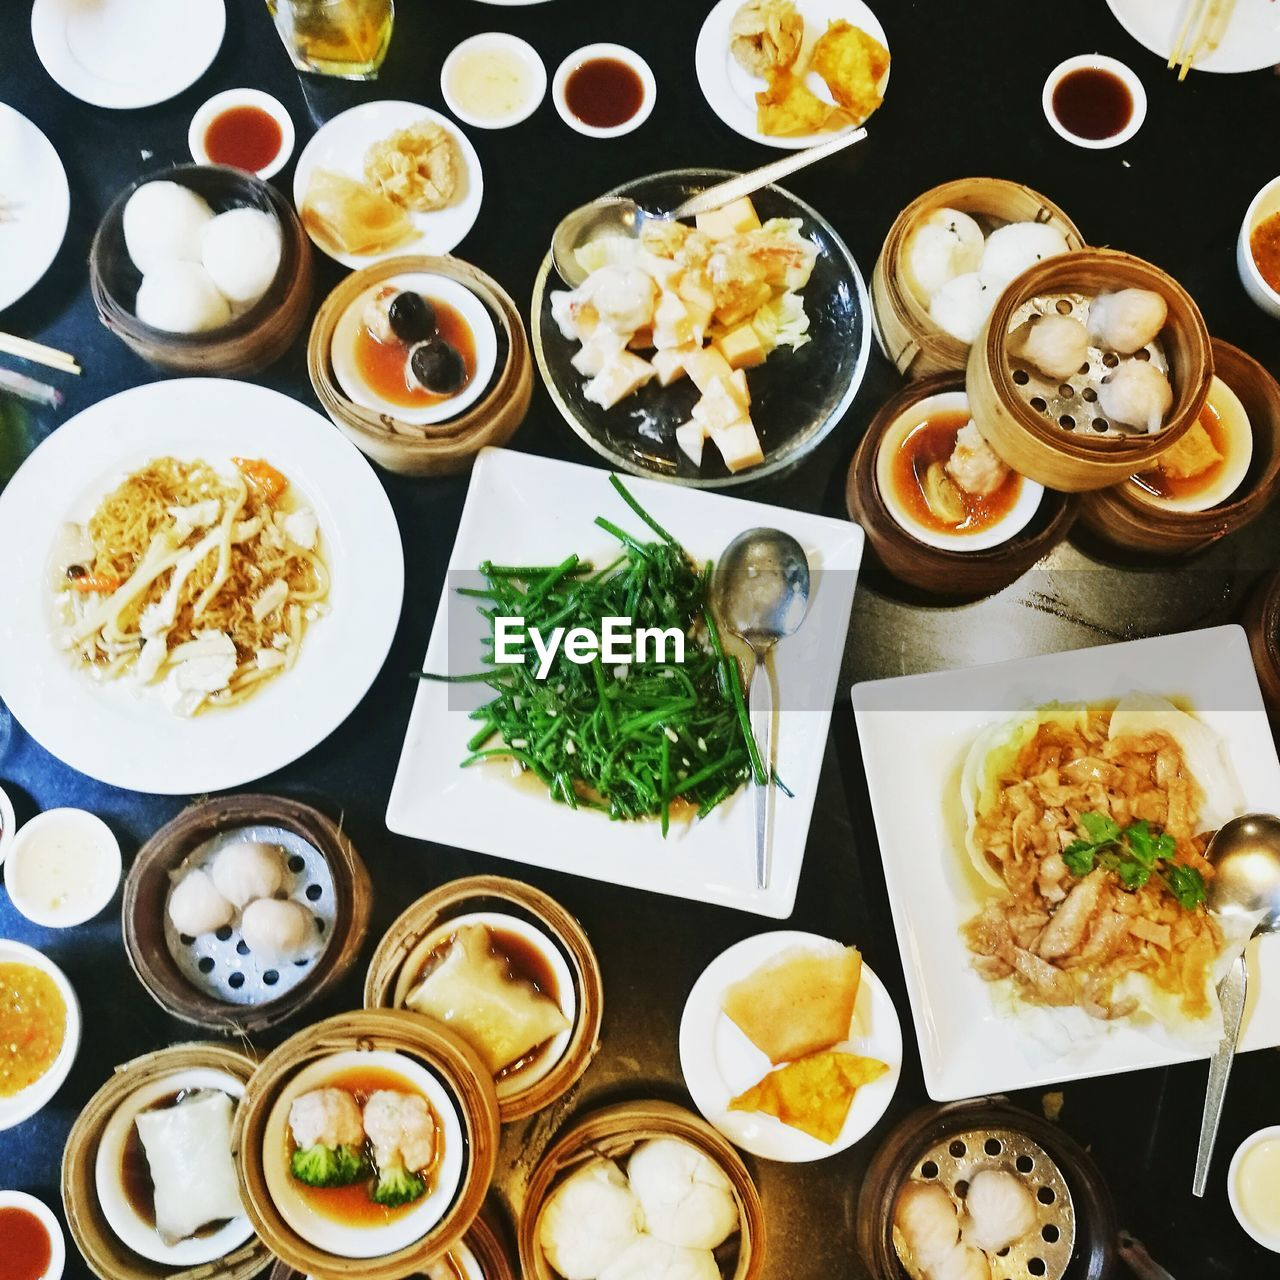 food and drink, food, ready-to-eat, freshness, variation, table, healthy eating, serving size, high angle view, plate, bowl, seafood, indoors, chopsticks, rice - food staple, no people, chinese dumpling, meal, directly above, spring roll, dumpling, chinese food, close-up, dim sum, day